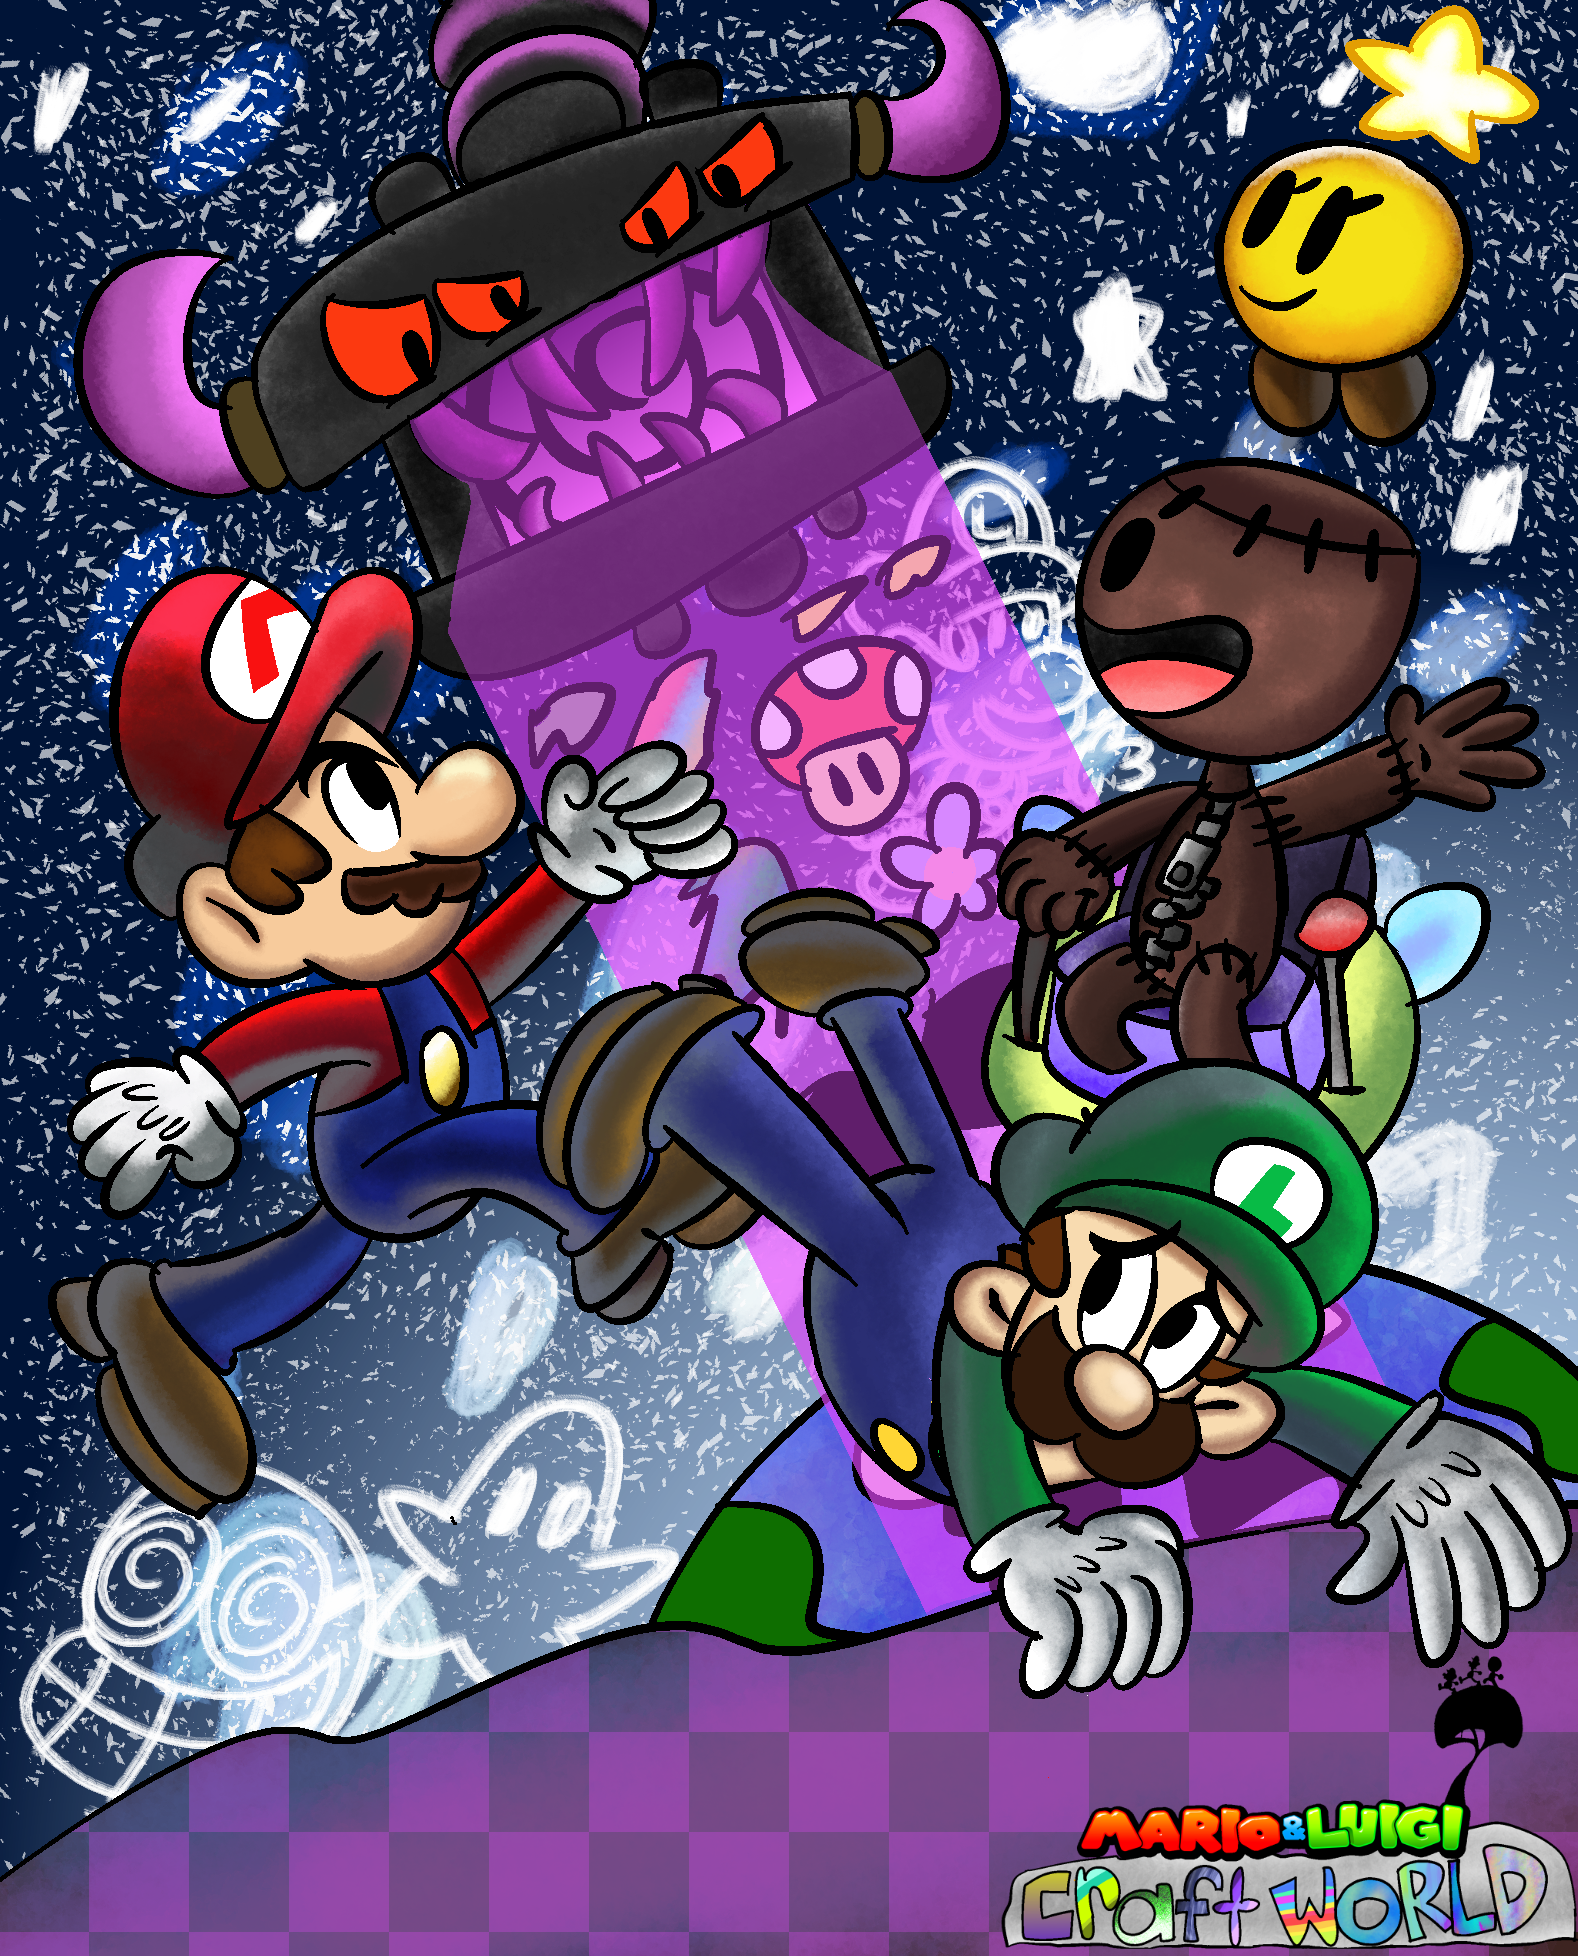 The Negativitrion is attacking Craft World and up to the Mario Bros. to team up with Sackboy to stop him!